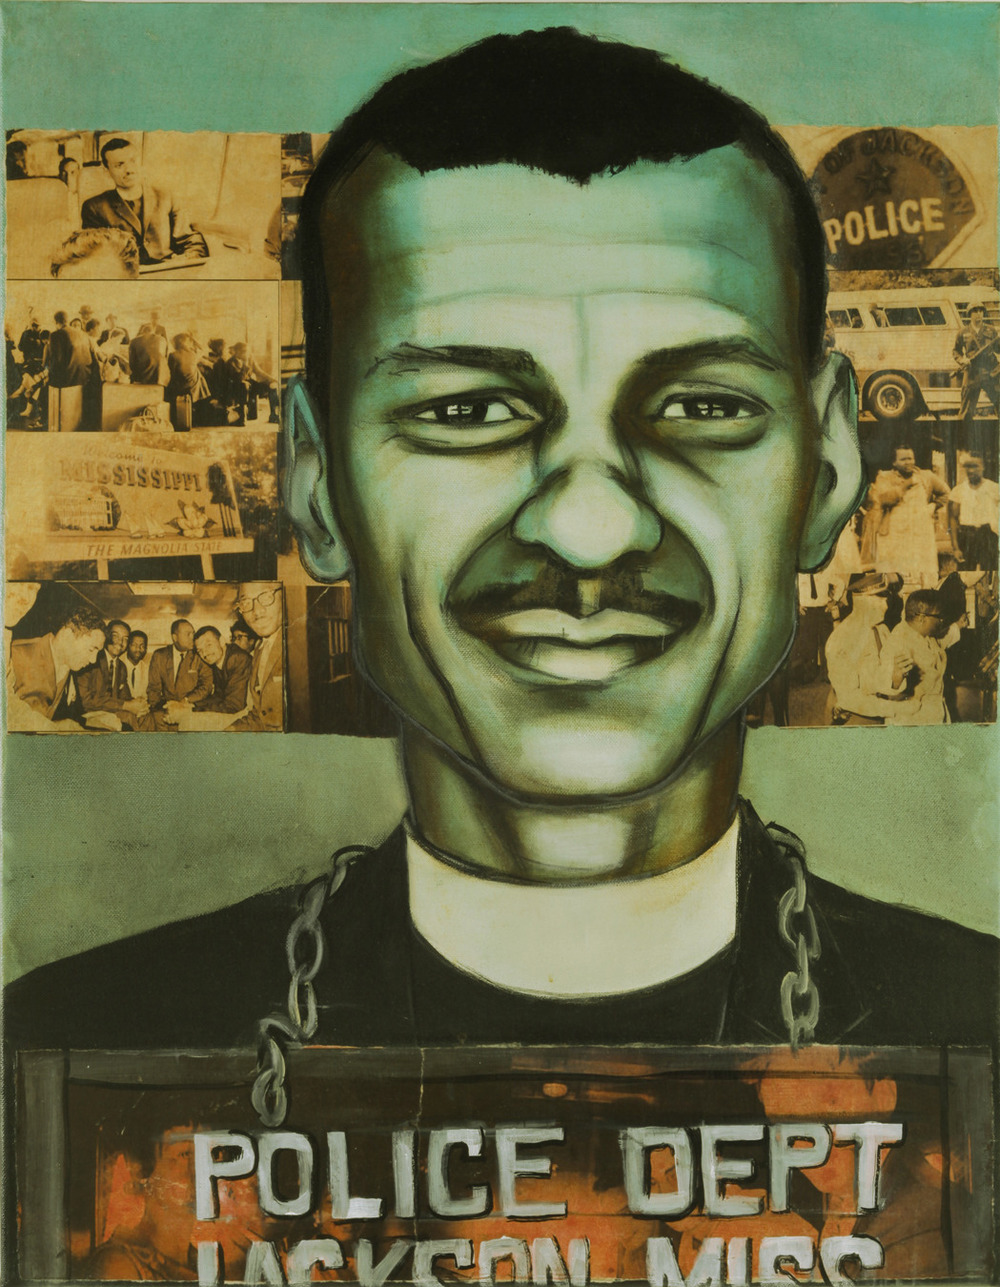 Arrested May 24, 1961 in Jackson, MS: Rev. C. T. Vivian, 36